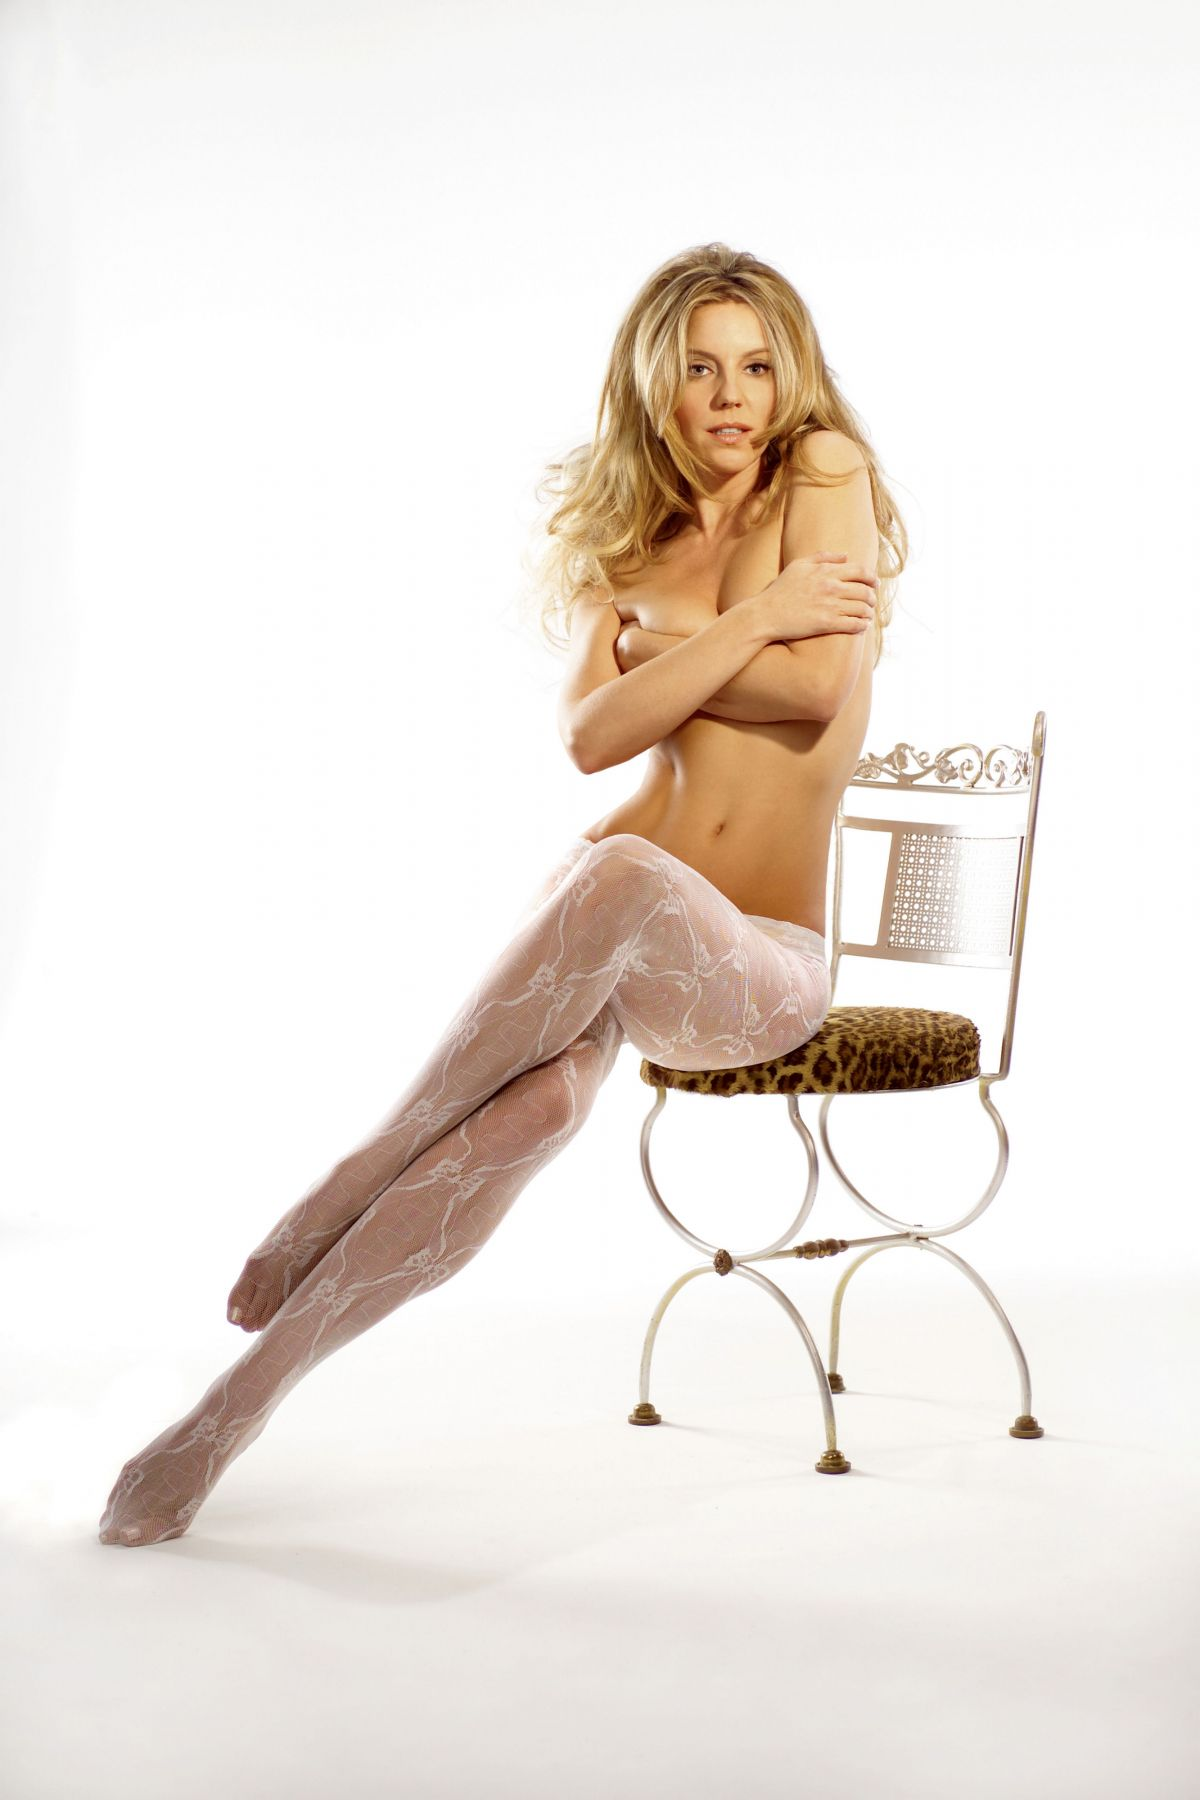 Best from the Past - ANDREA PARKER for Razor Magazine